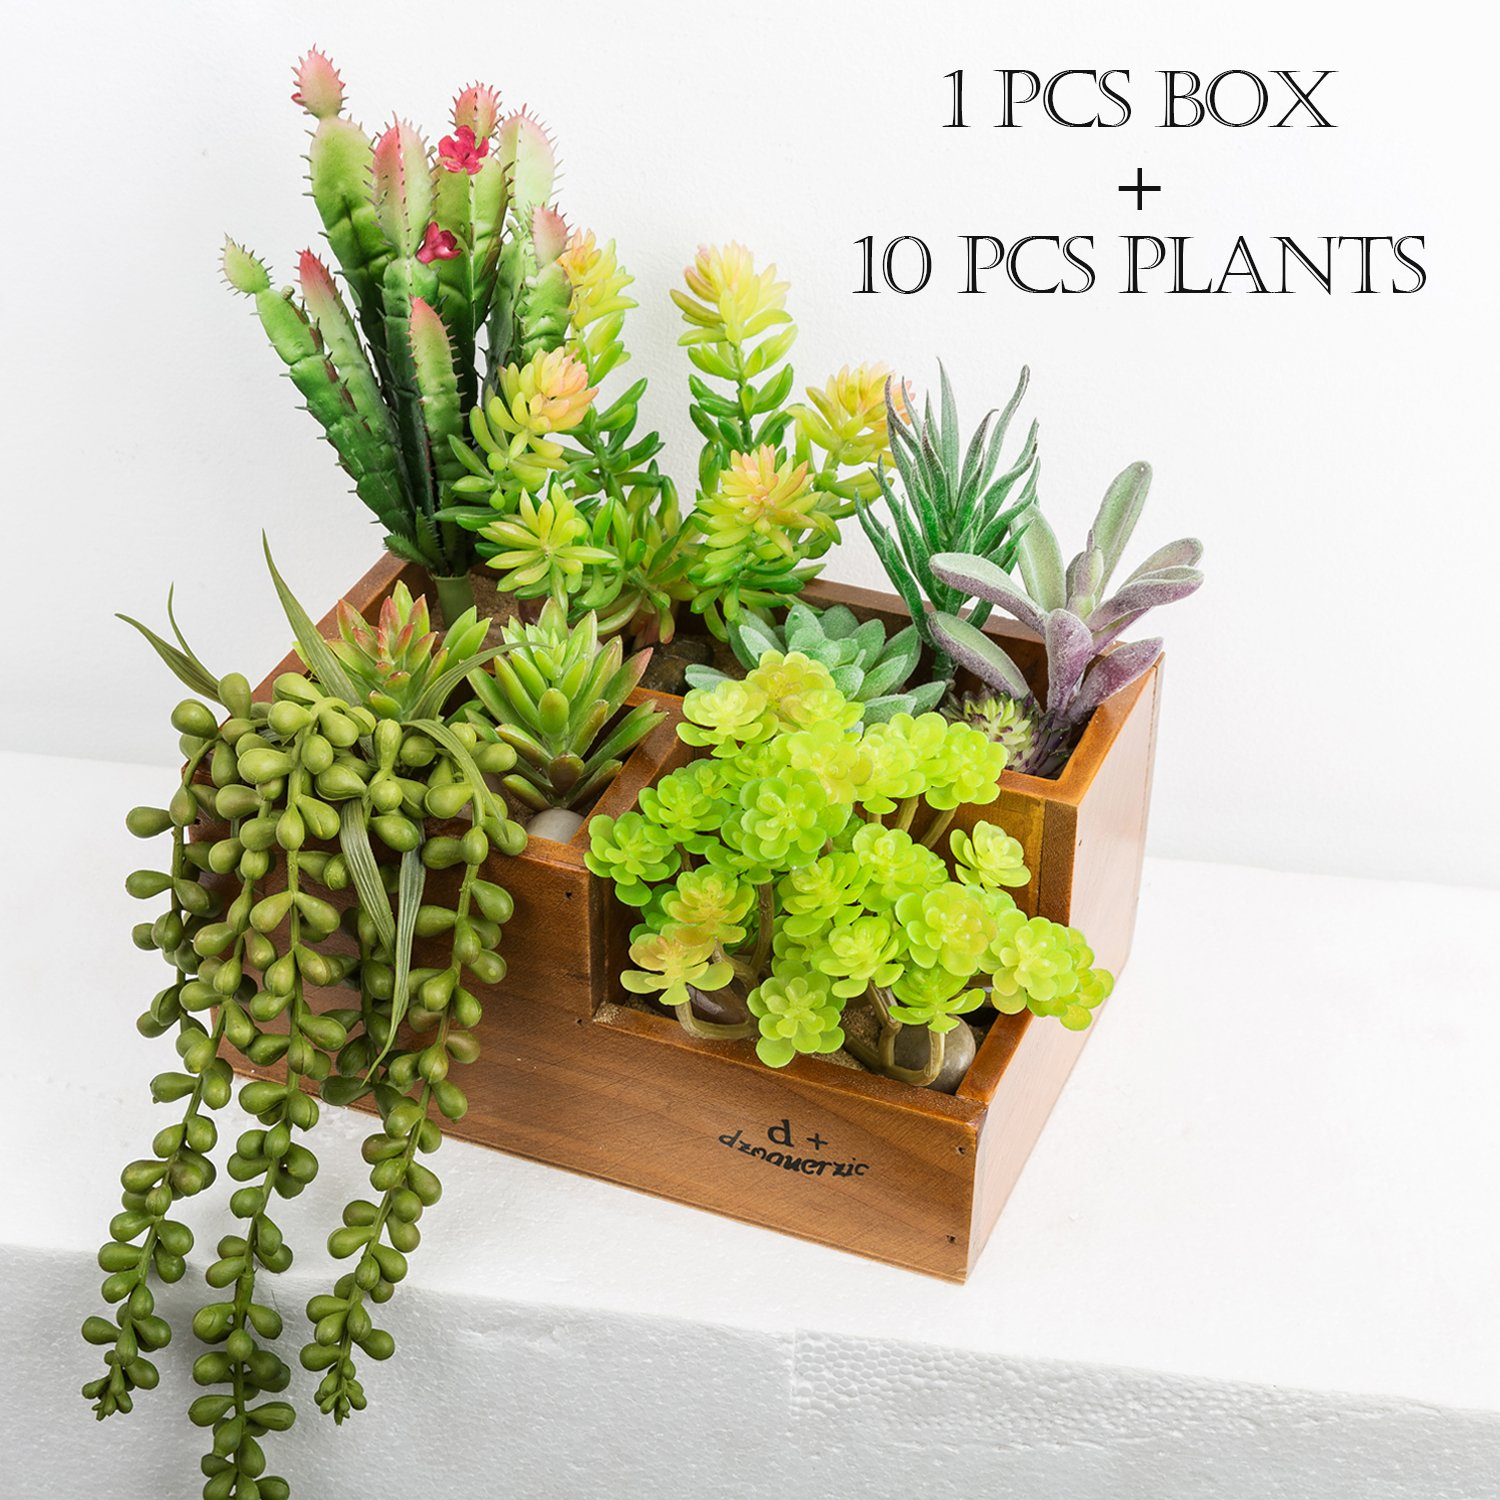 CHICVITA Artificial Succulent Plants Assorted Decorative Faux Succulents Artificial Cactus Aloe with Wooden Garden Window Box Trough Planter Succulent Flower Bed Pot (Three gird) by CHICVITA